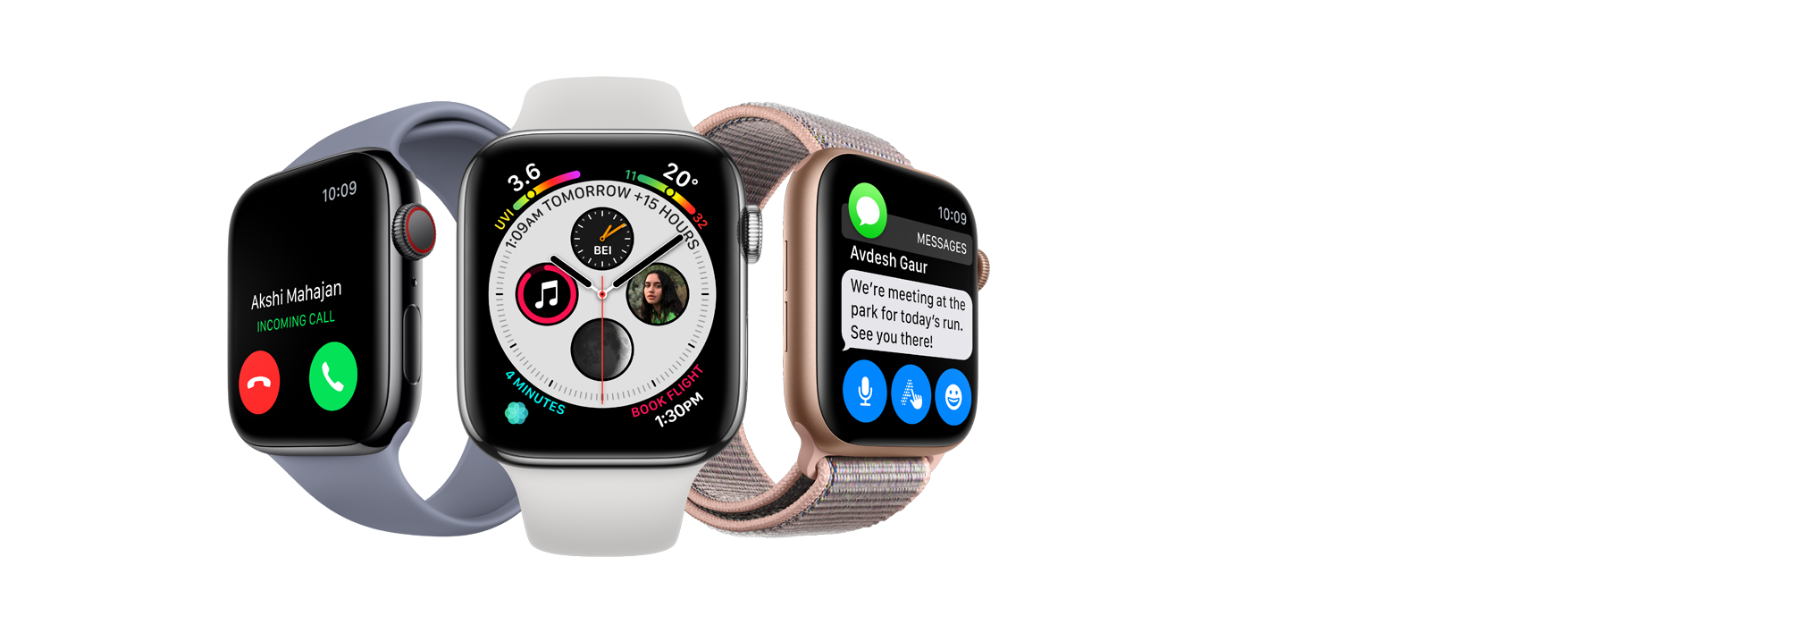 Apple Watch Online | Checkout Latest iWatch at Maplestore in